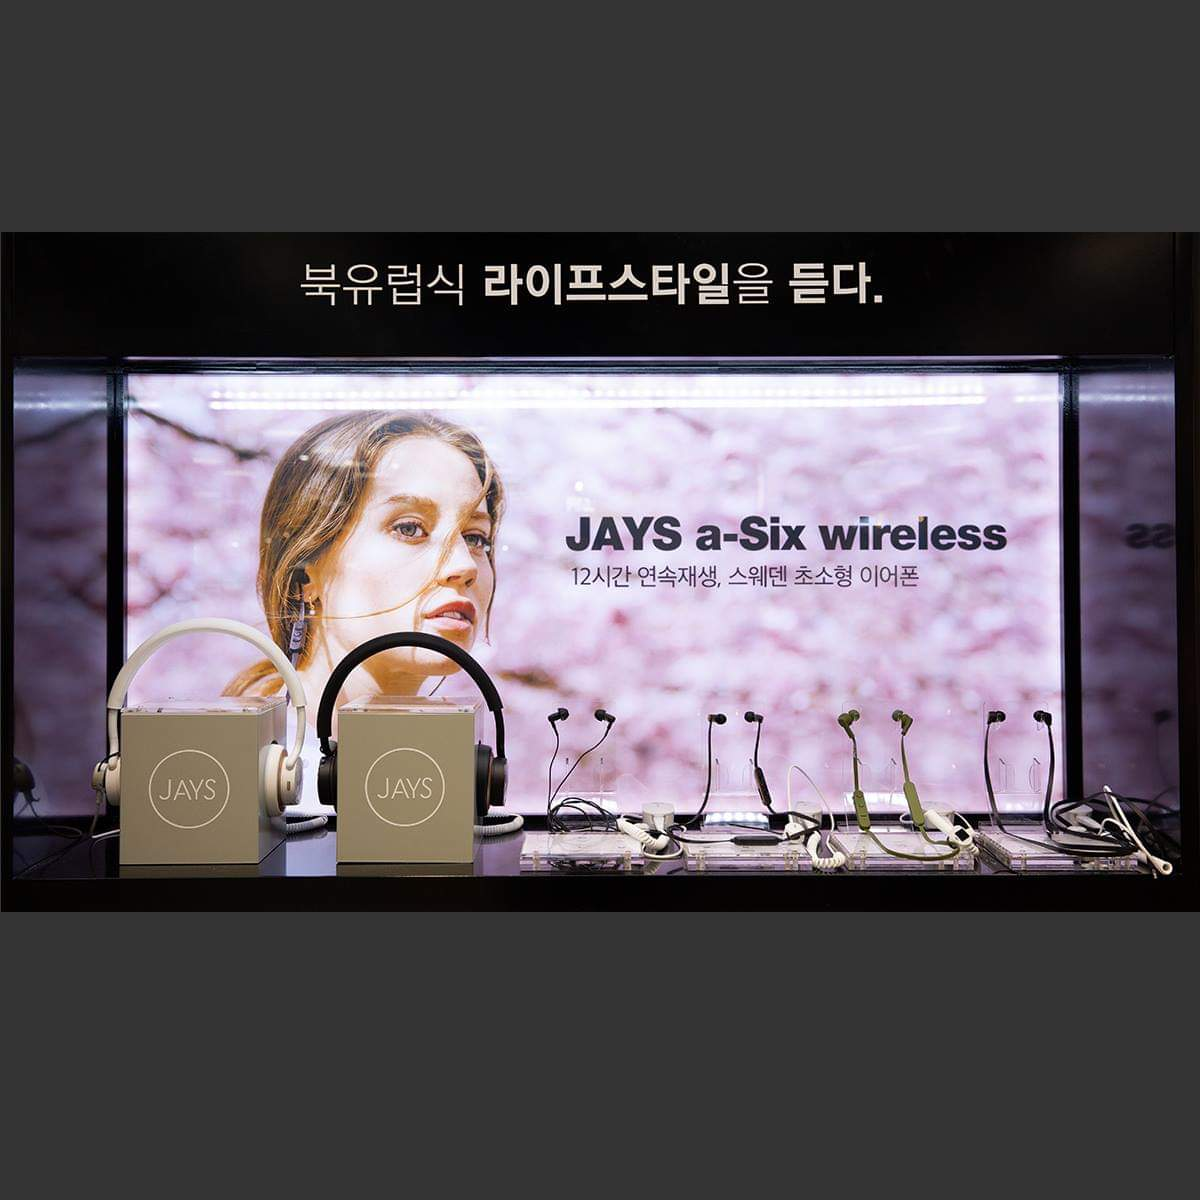 Jays branded fixture at Emart flagshipstore in Yeongdeungpo